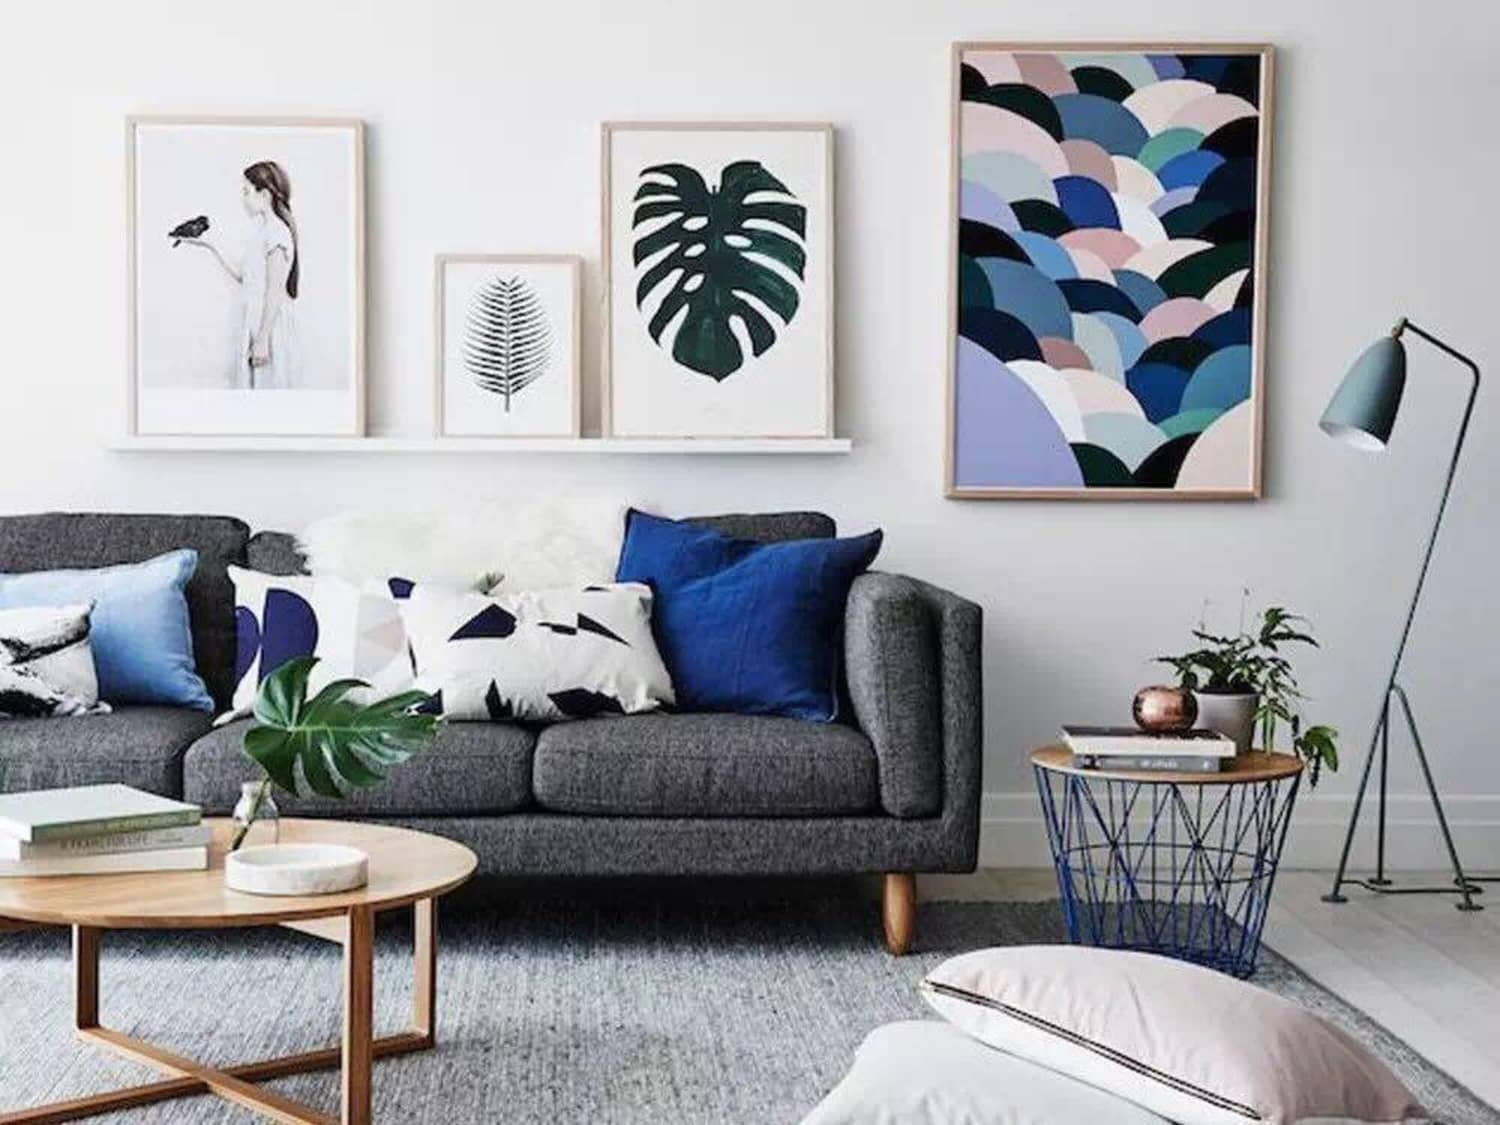 Feather renting really nice modern furniture online just got easier